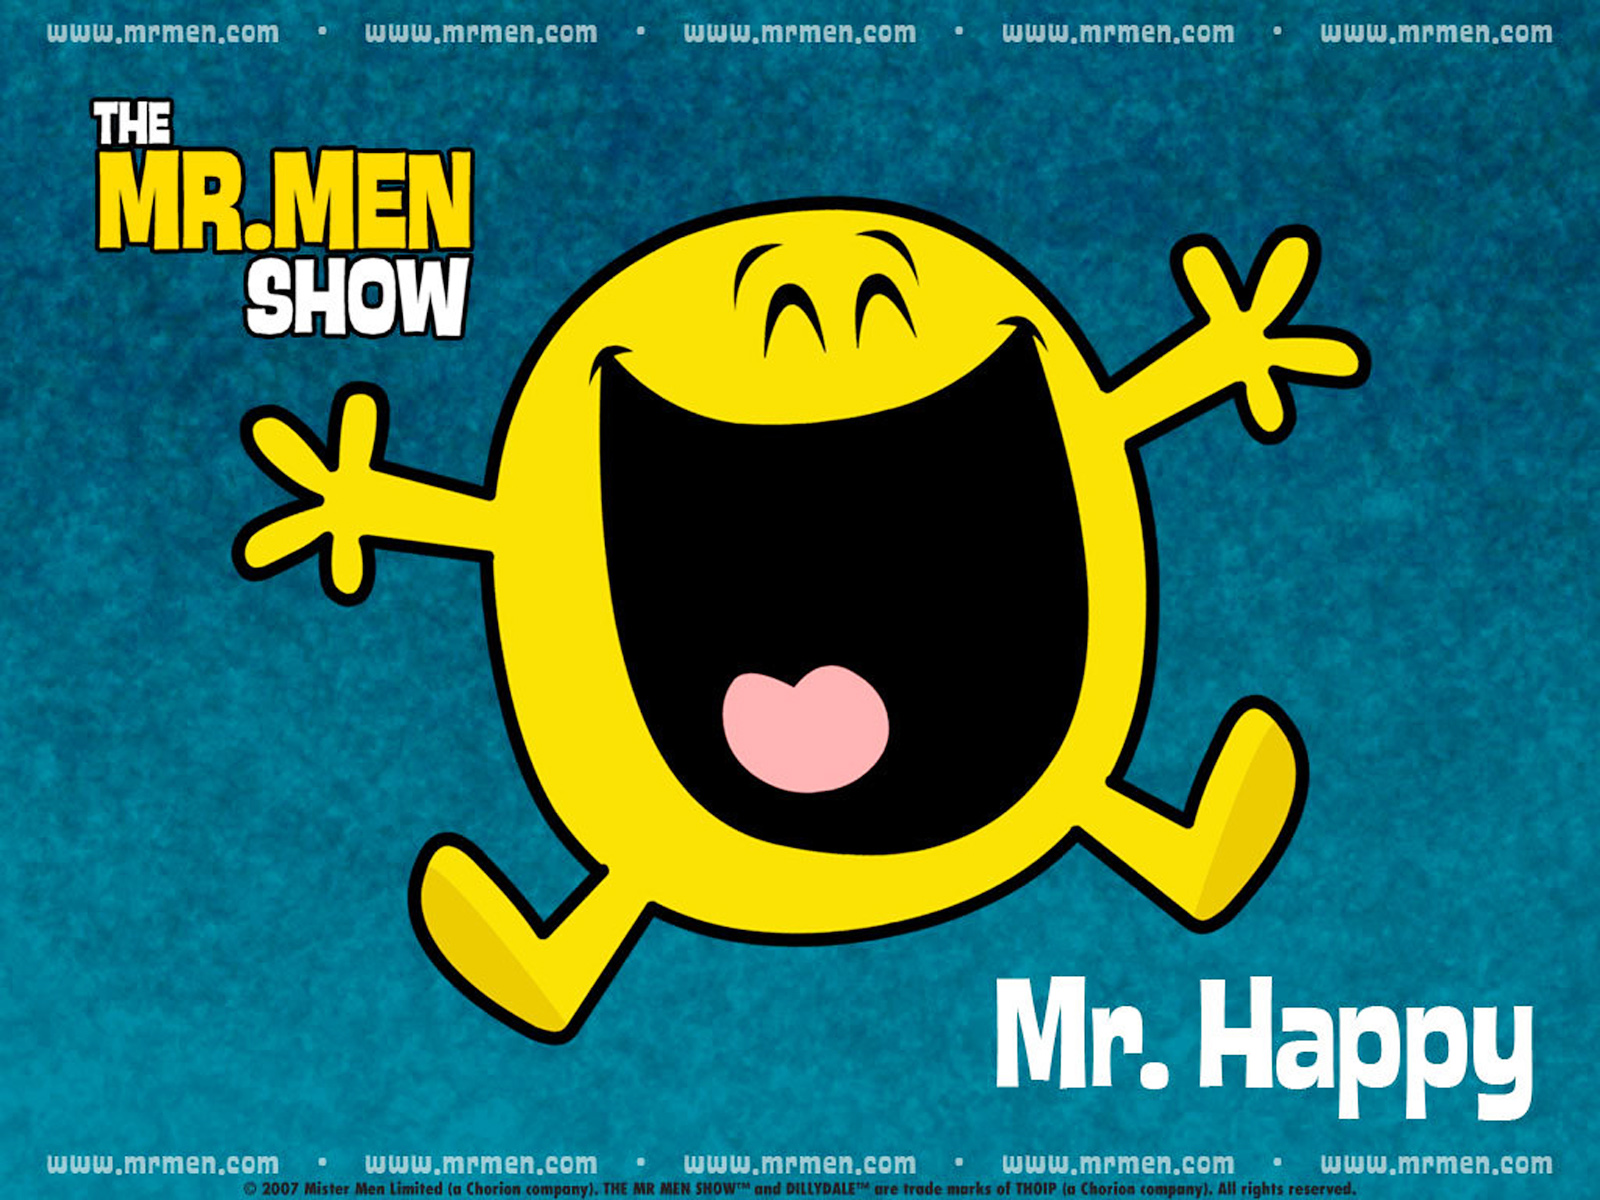 Production Coordinator, Cartoon Network's The Mr. Men Show